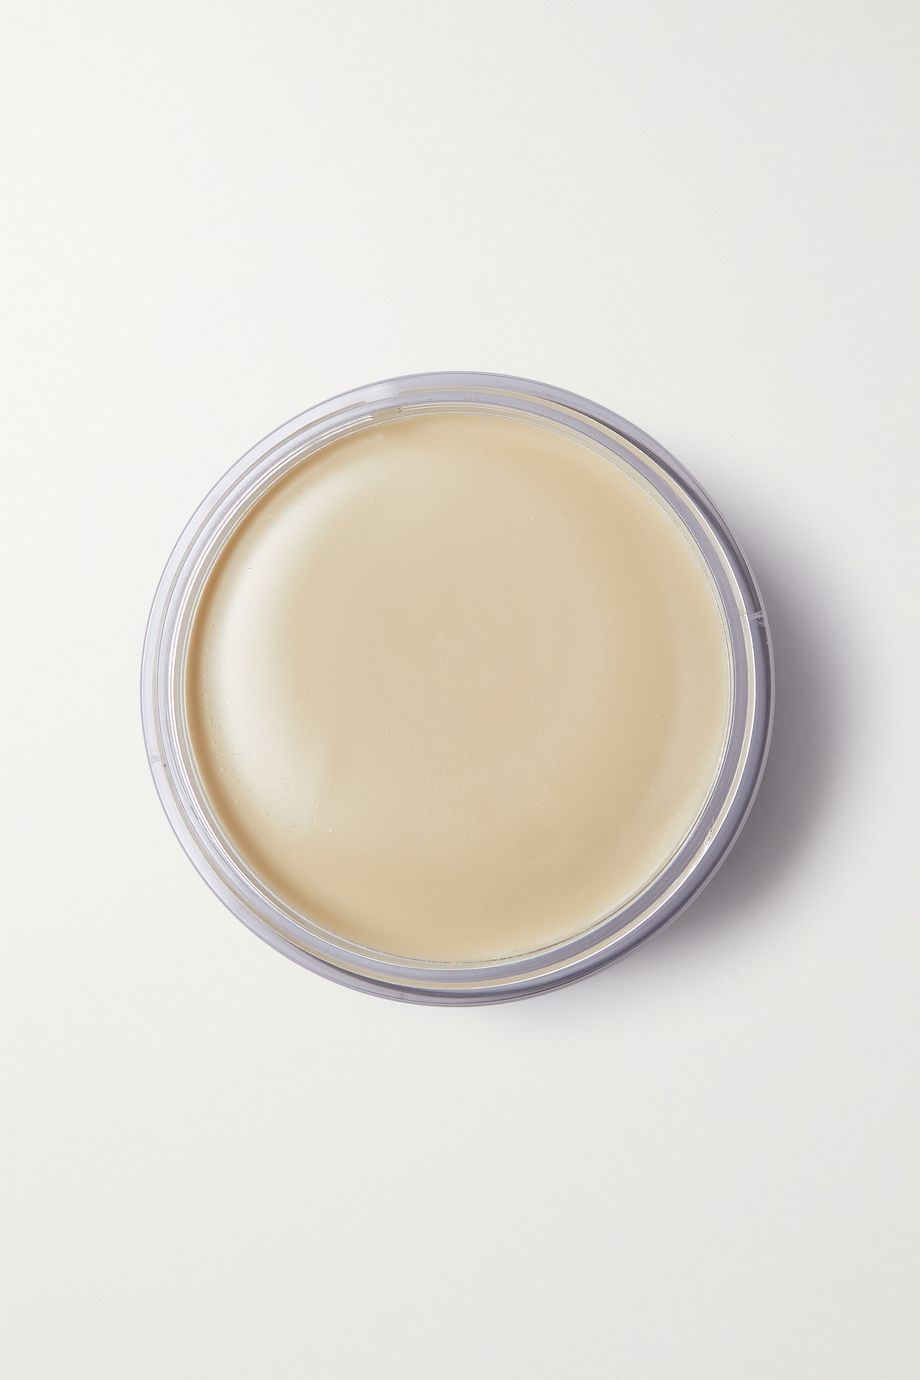 BALMAIN PARIS HAIR COUTURE Matt Clay Strong, 100ml